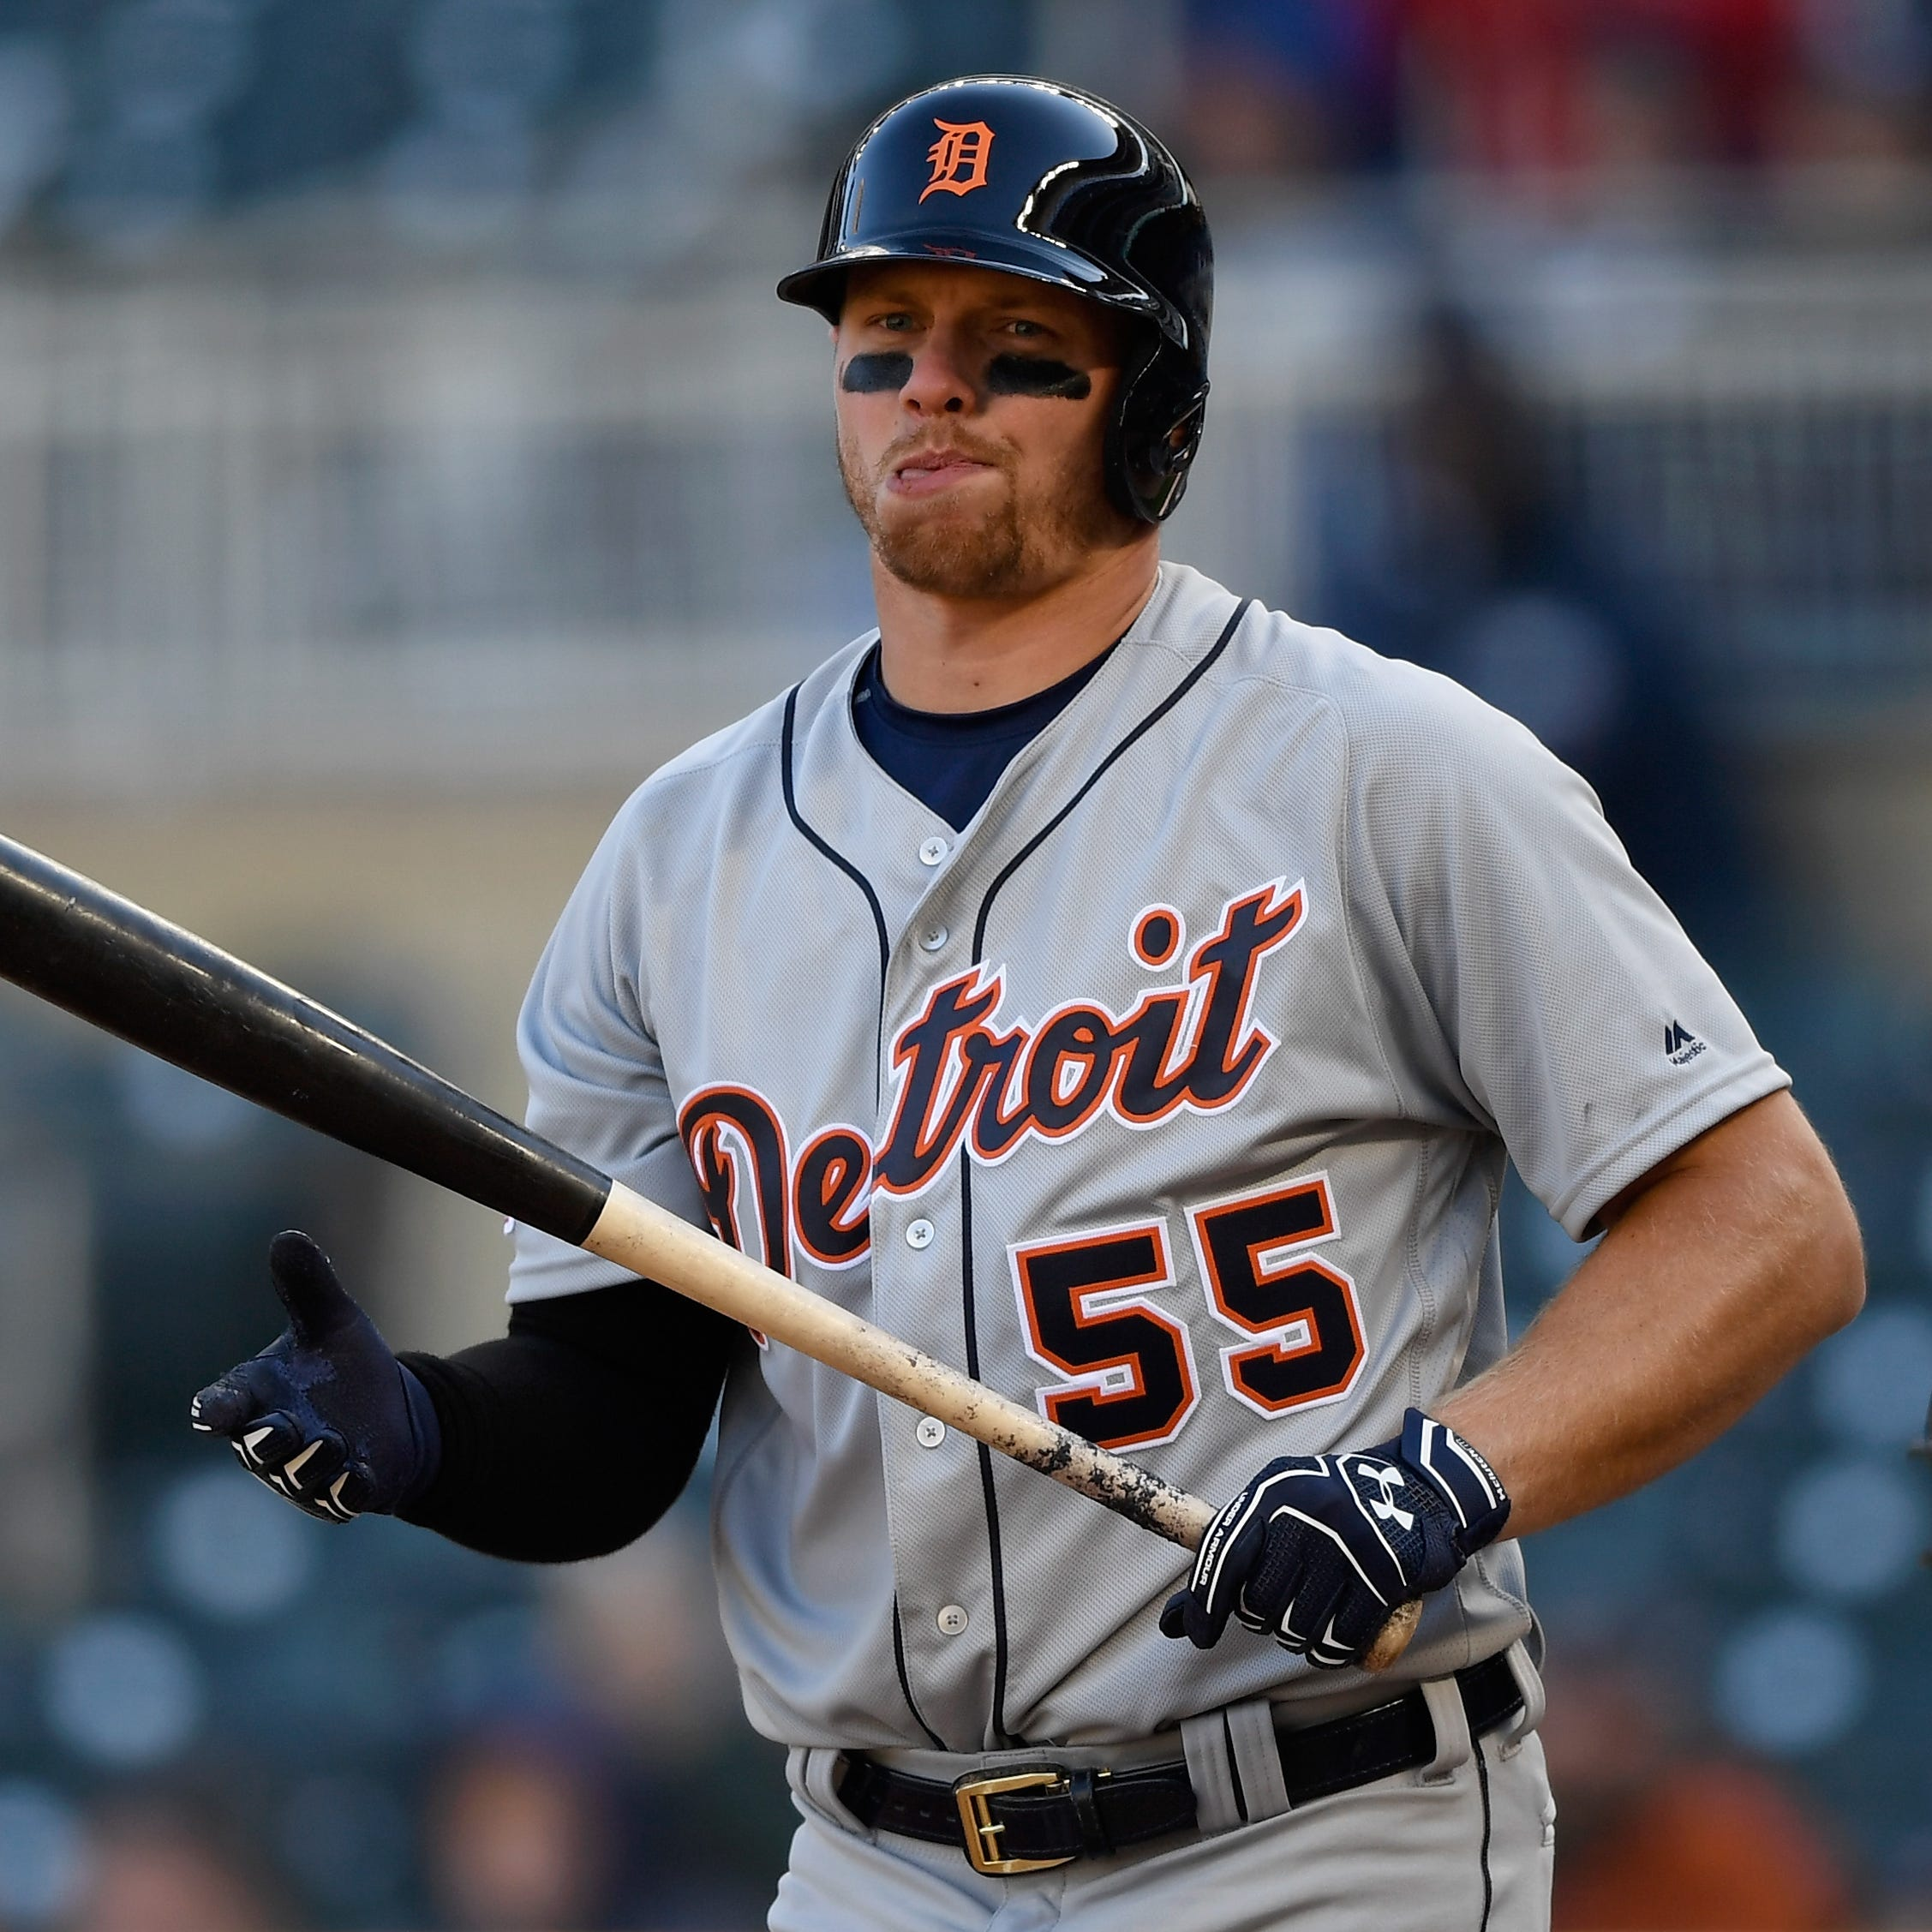 Detroit Tigers lineup vs. Pittsburgh Pirates: Castellanos returns as DH